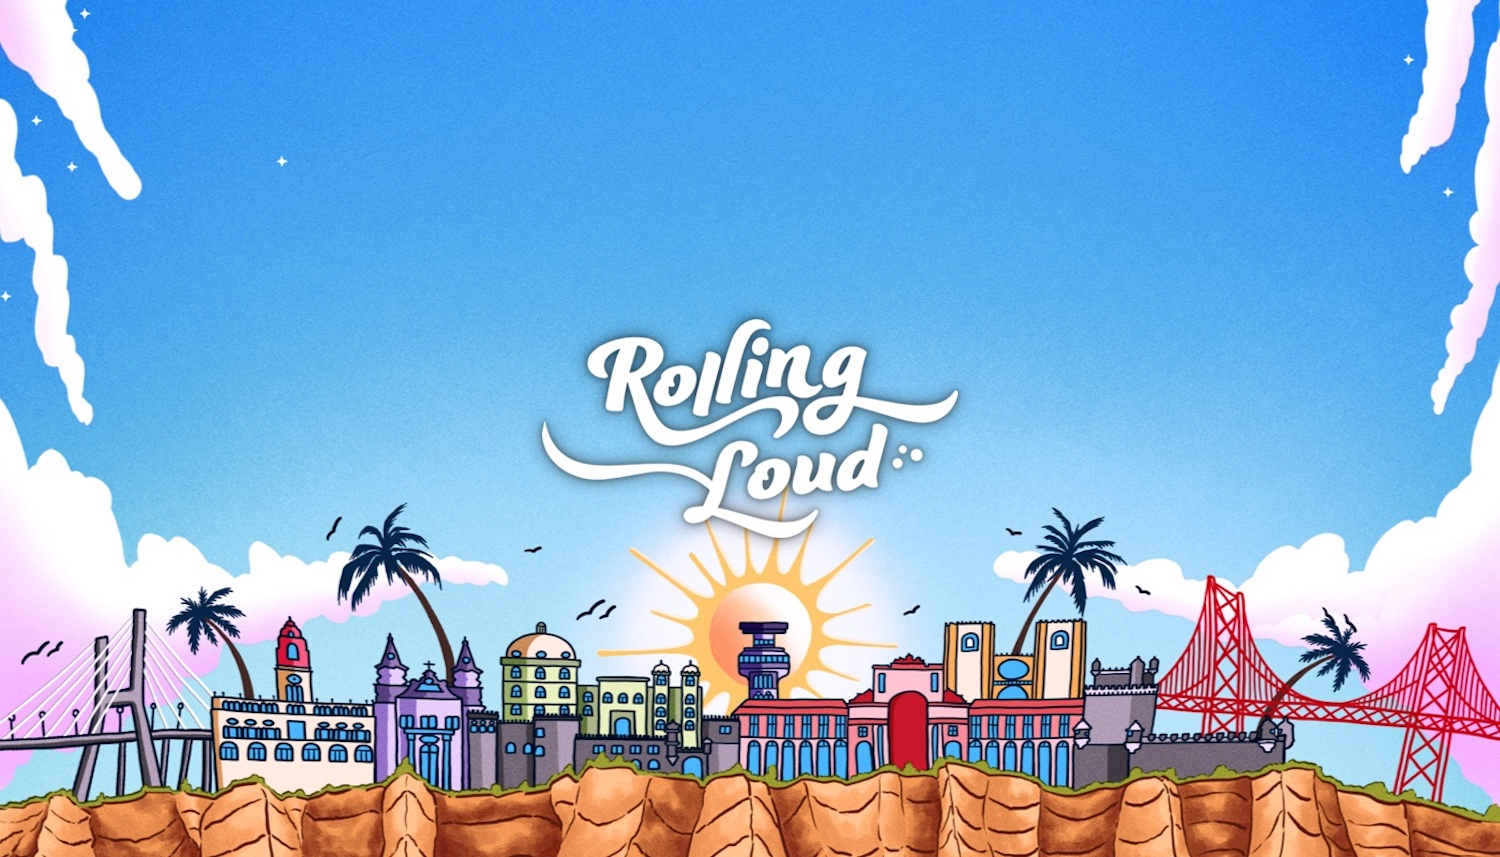 Here's The Official Line-Up For Rolling Loud 2021